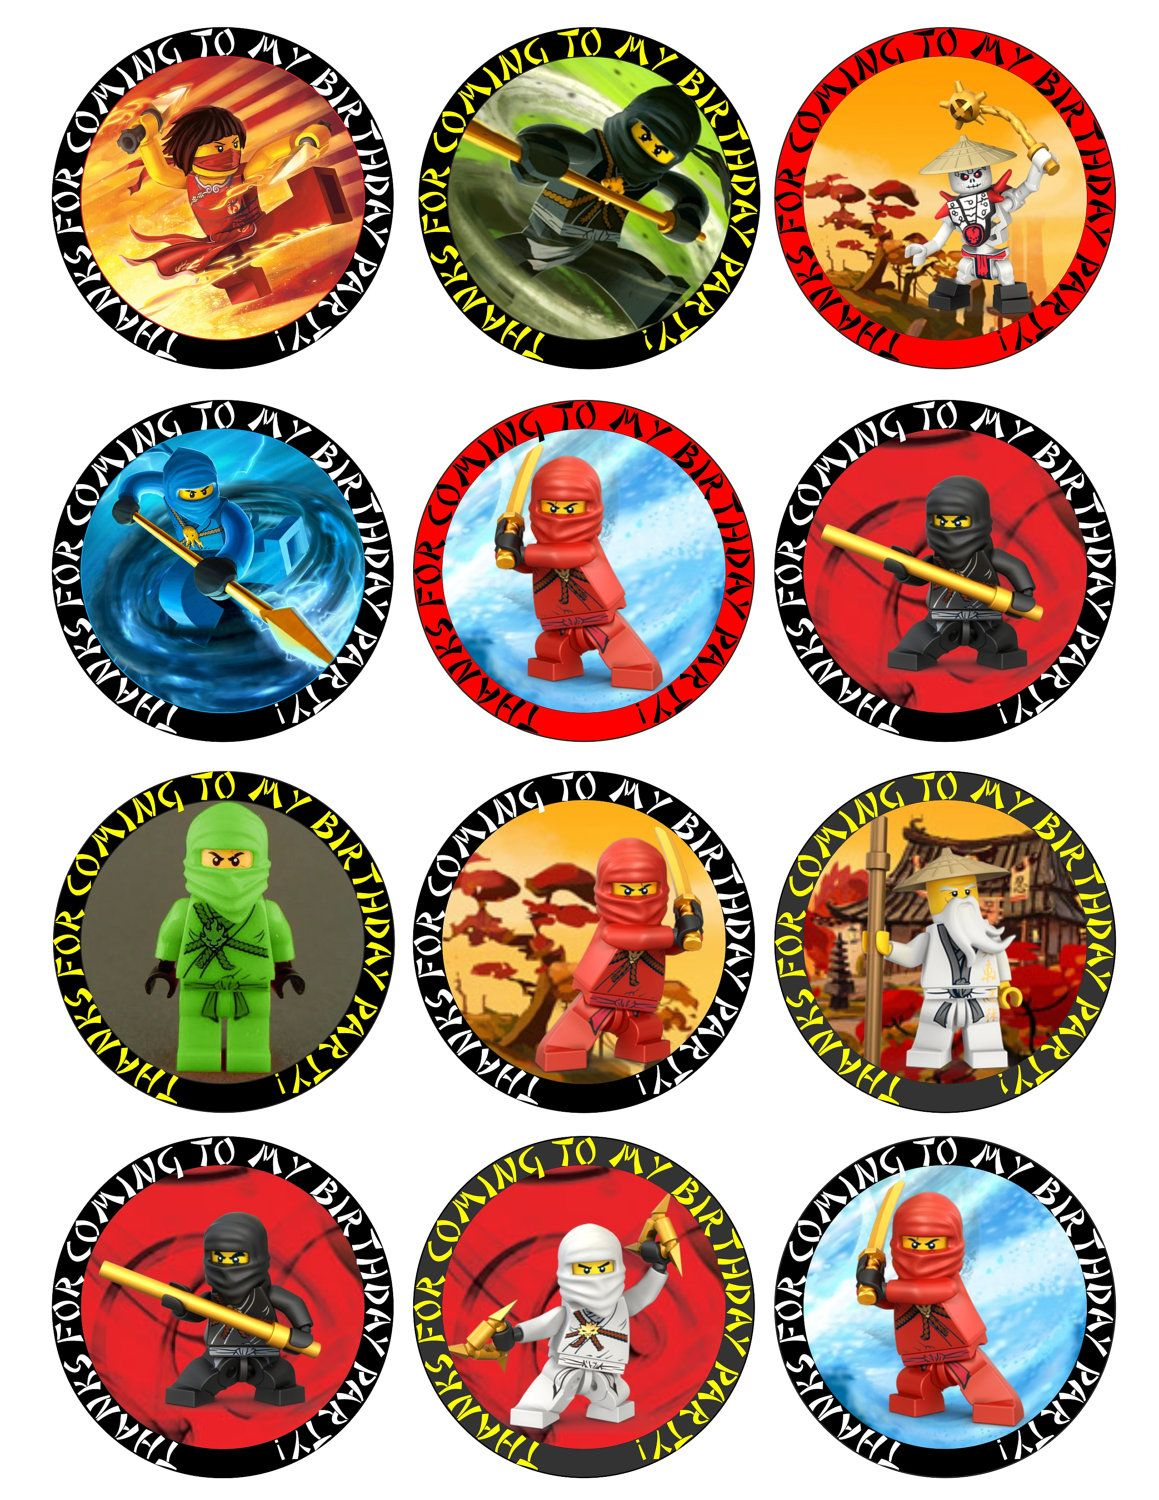 Ninjago Free Printable Toppers Labels Images And Invitations